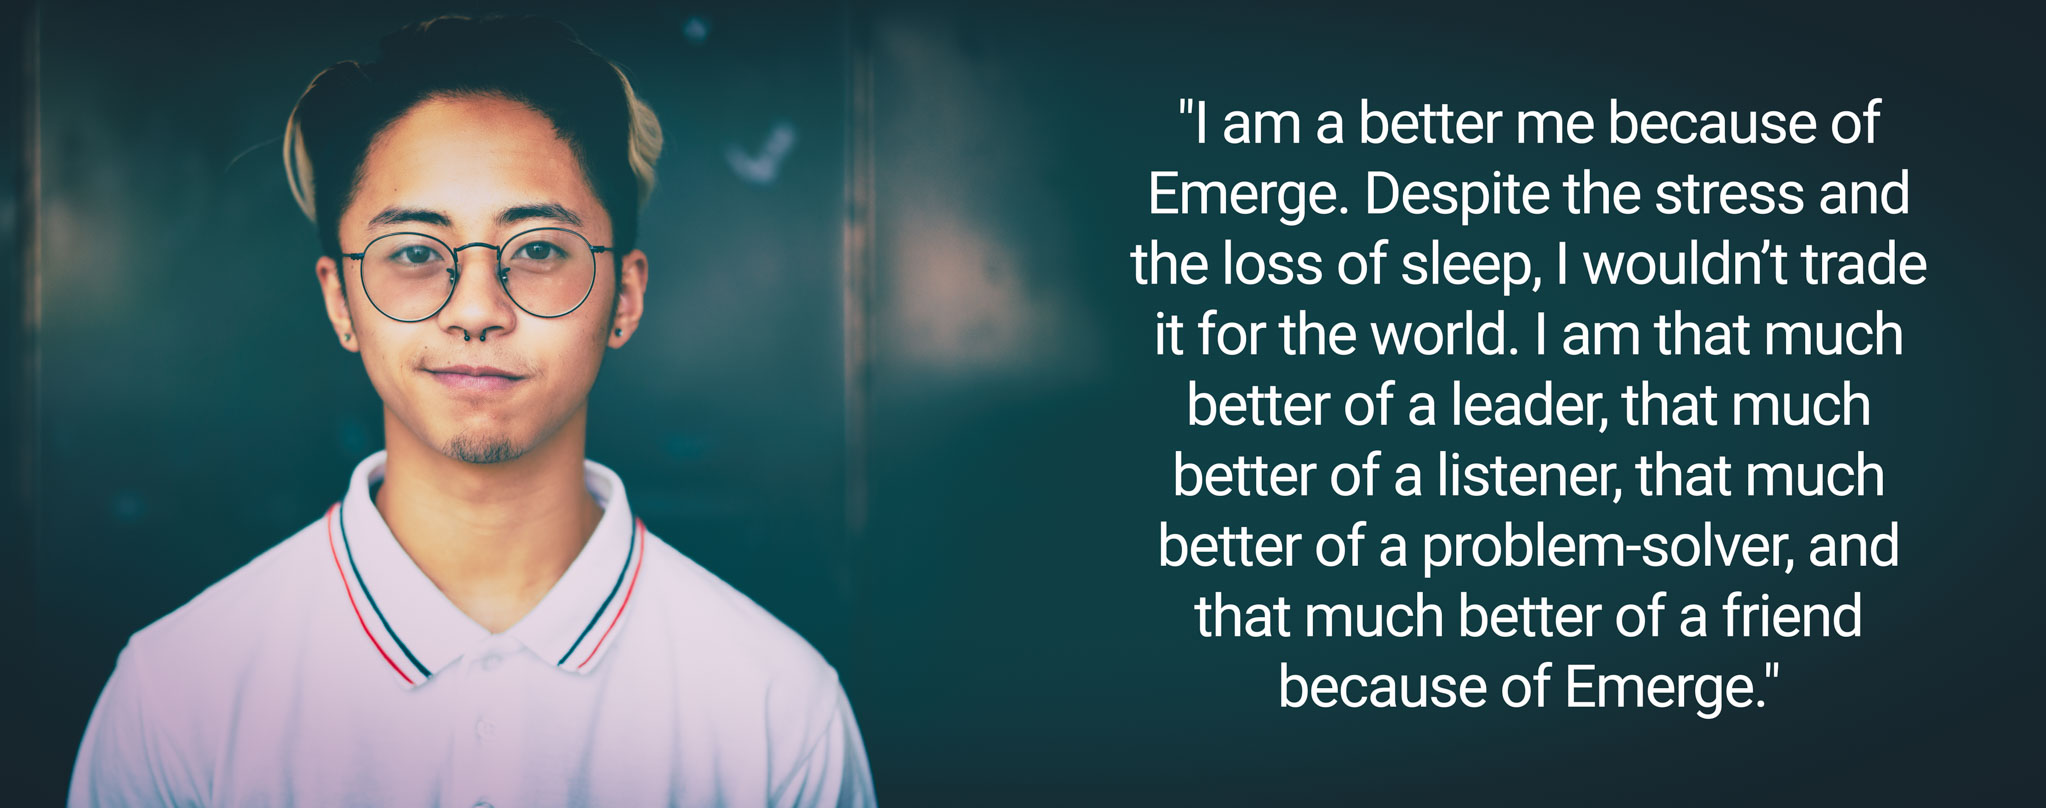 "Text that reads: ""I am a better me because of Emerge. Despite the stress and the loss of sleep, I wouldn't trade it for the world. I am that much better of a leader, that much better of a listener, that much better of a problem-solver, and that much better of a friend because of Emerge."